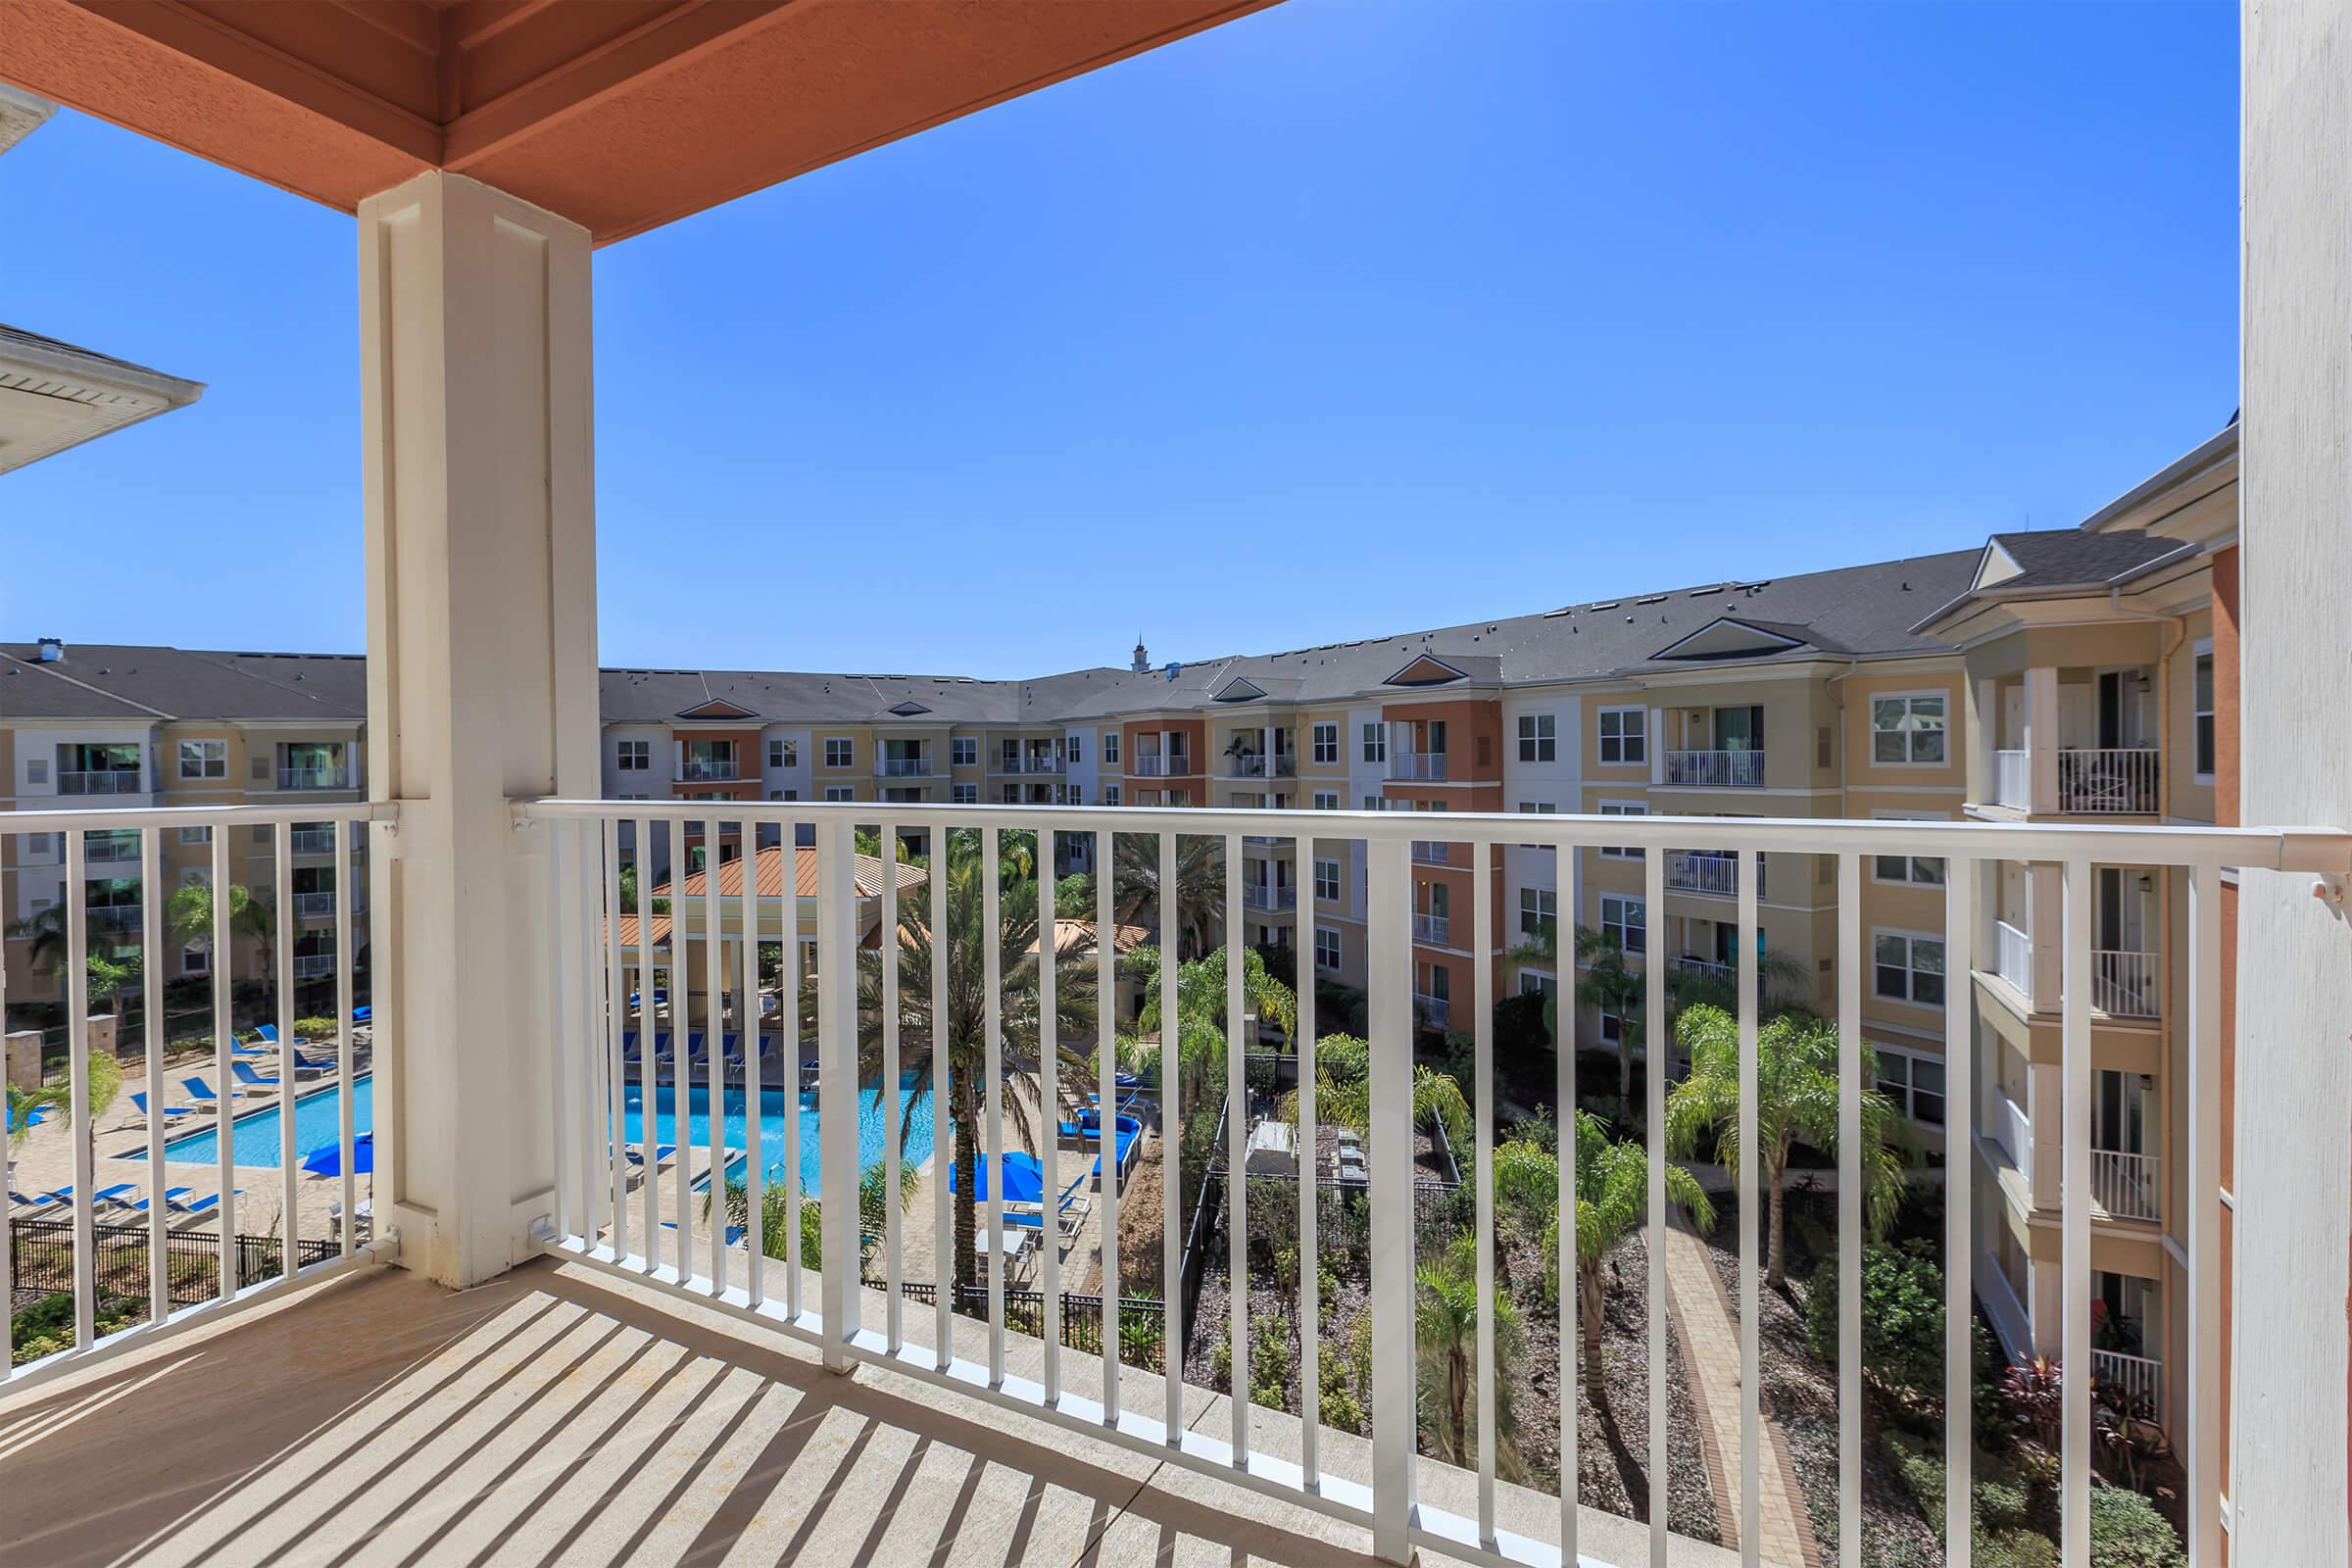 Balcony at RiZE at Winter Springs Apartments in Winter Springs, FL